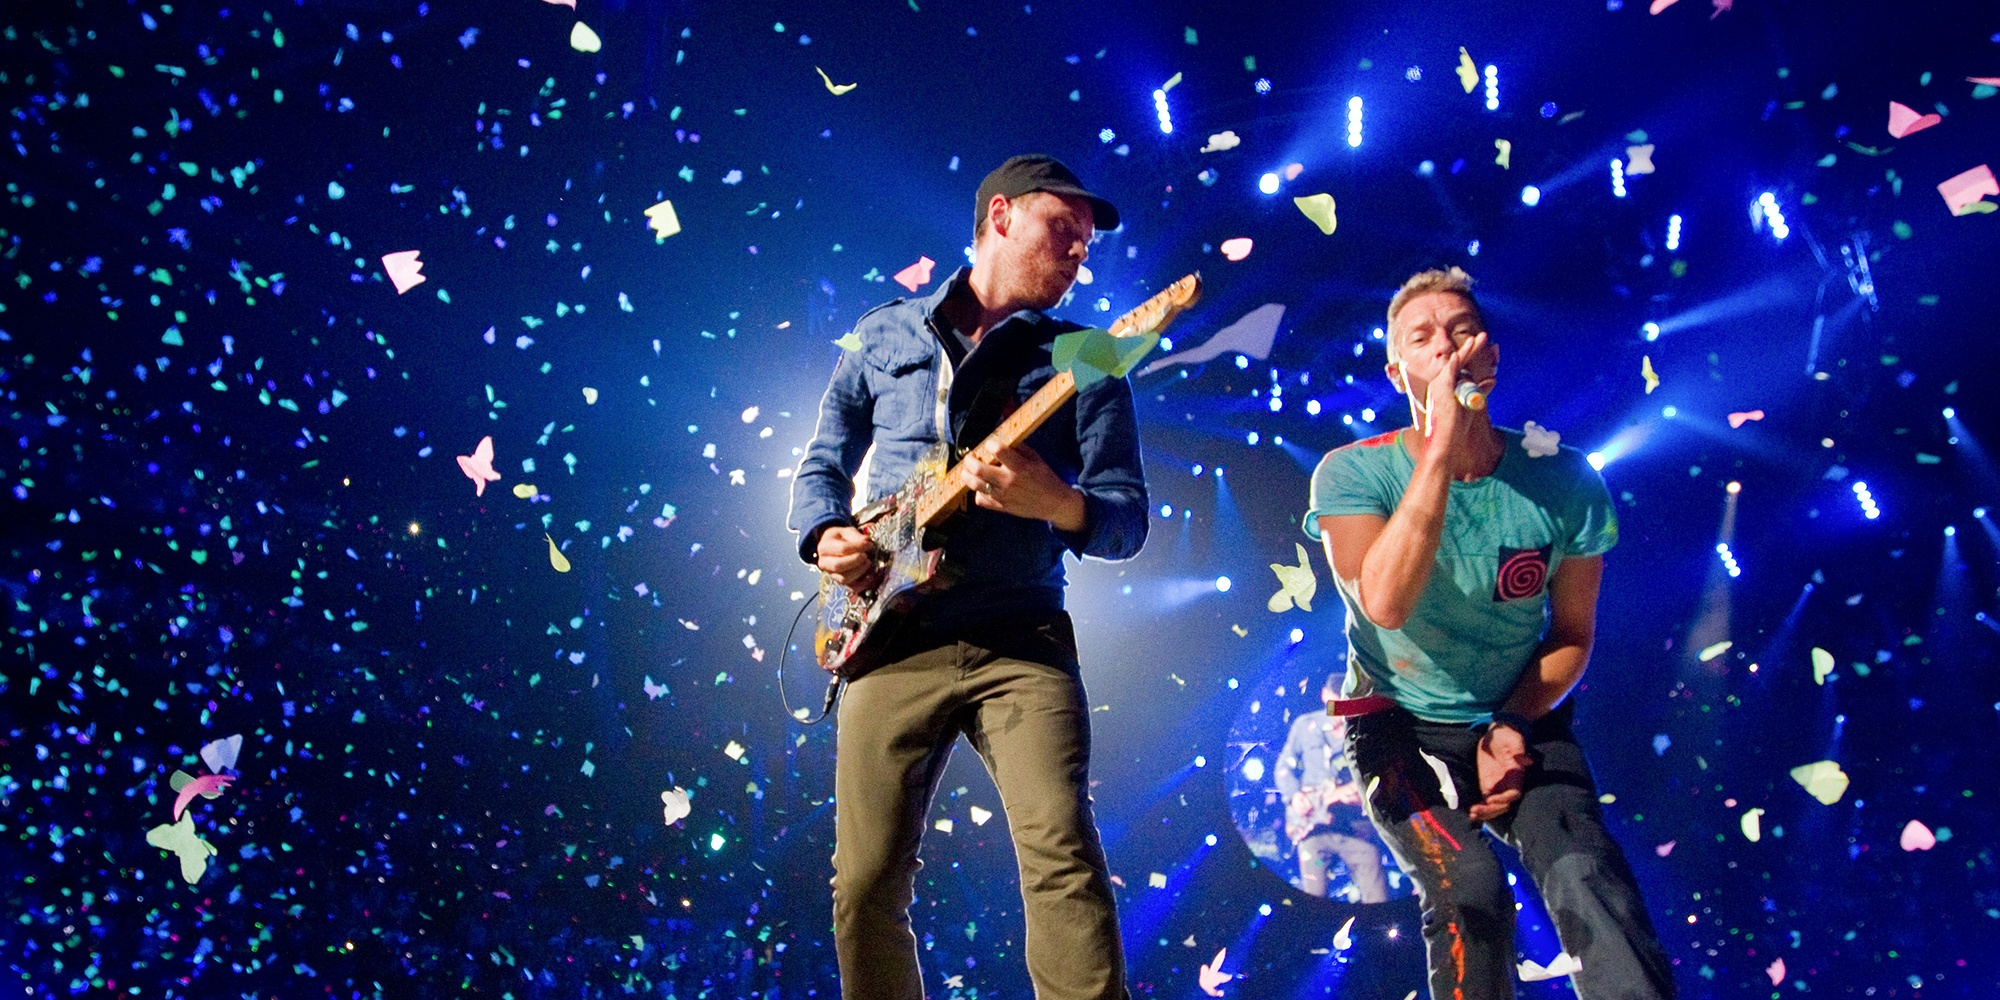 Two men were arrested for allegedly scamming Coldplay fans over Singapore shows